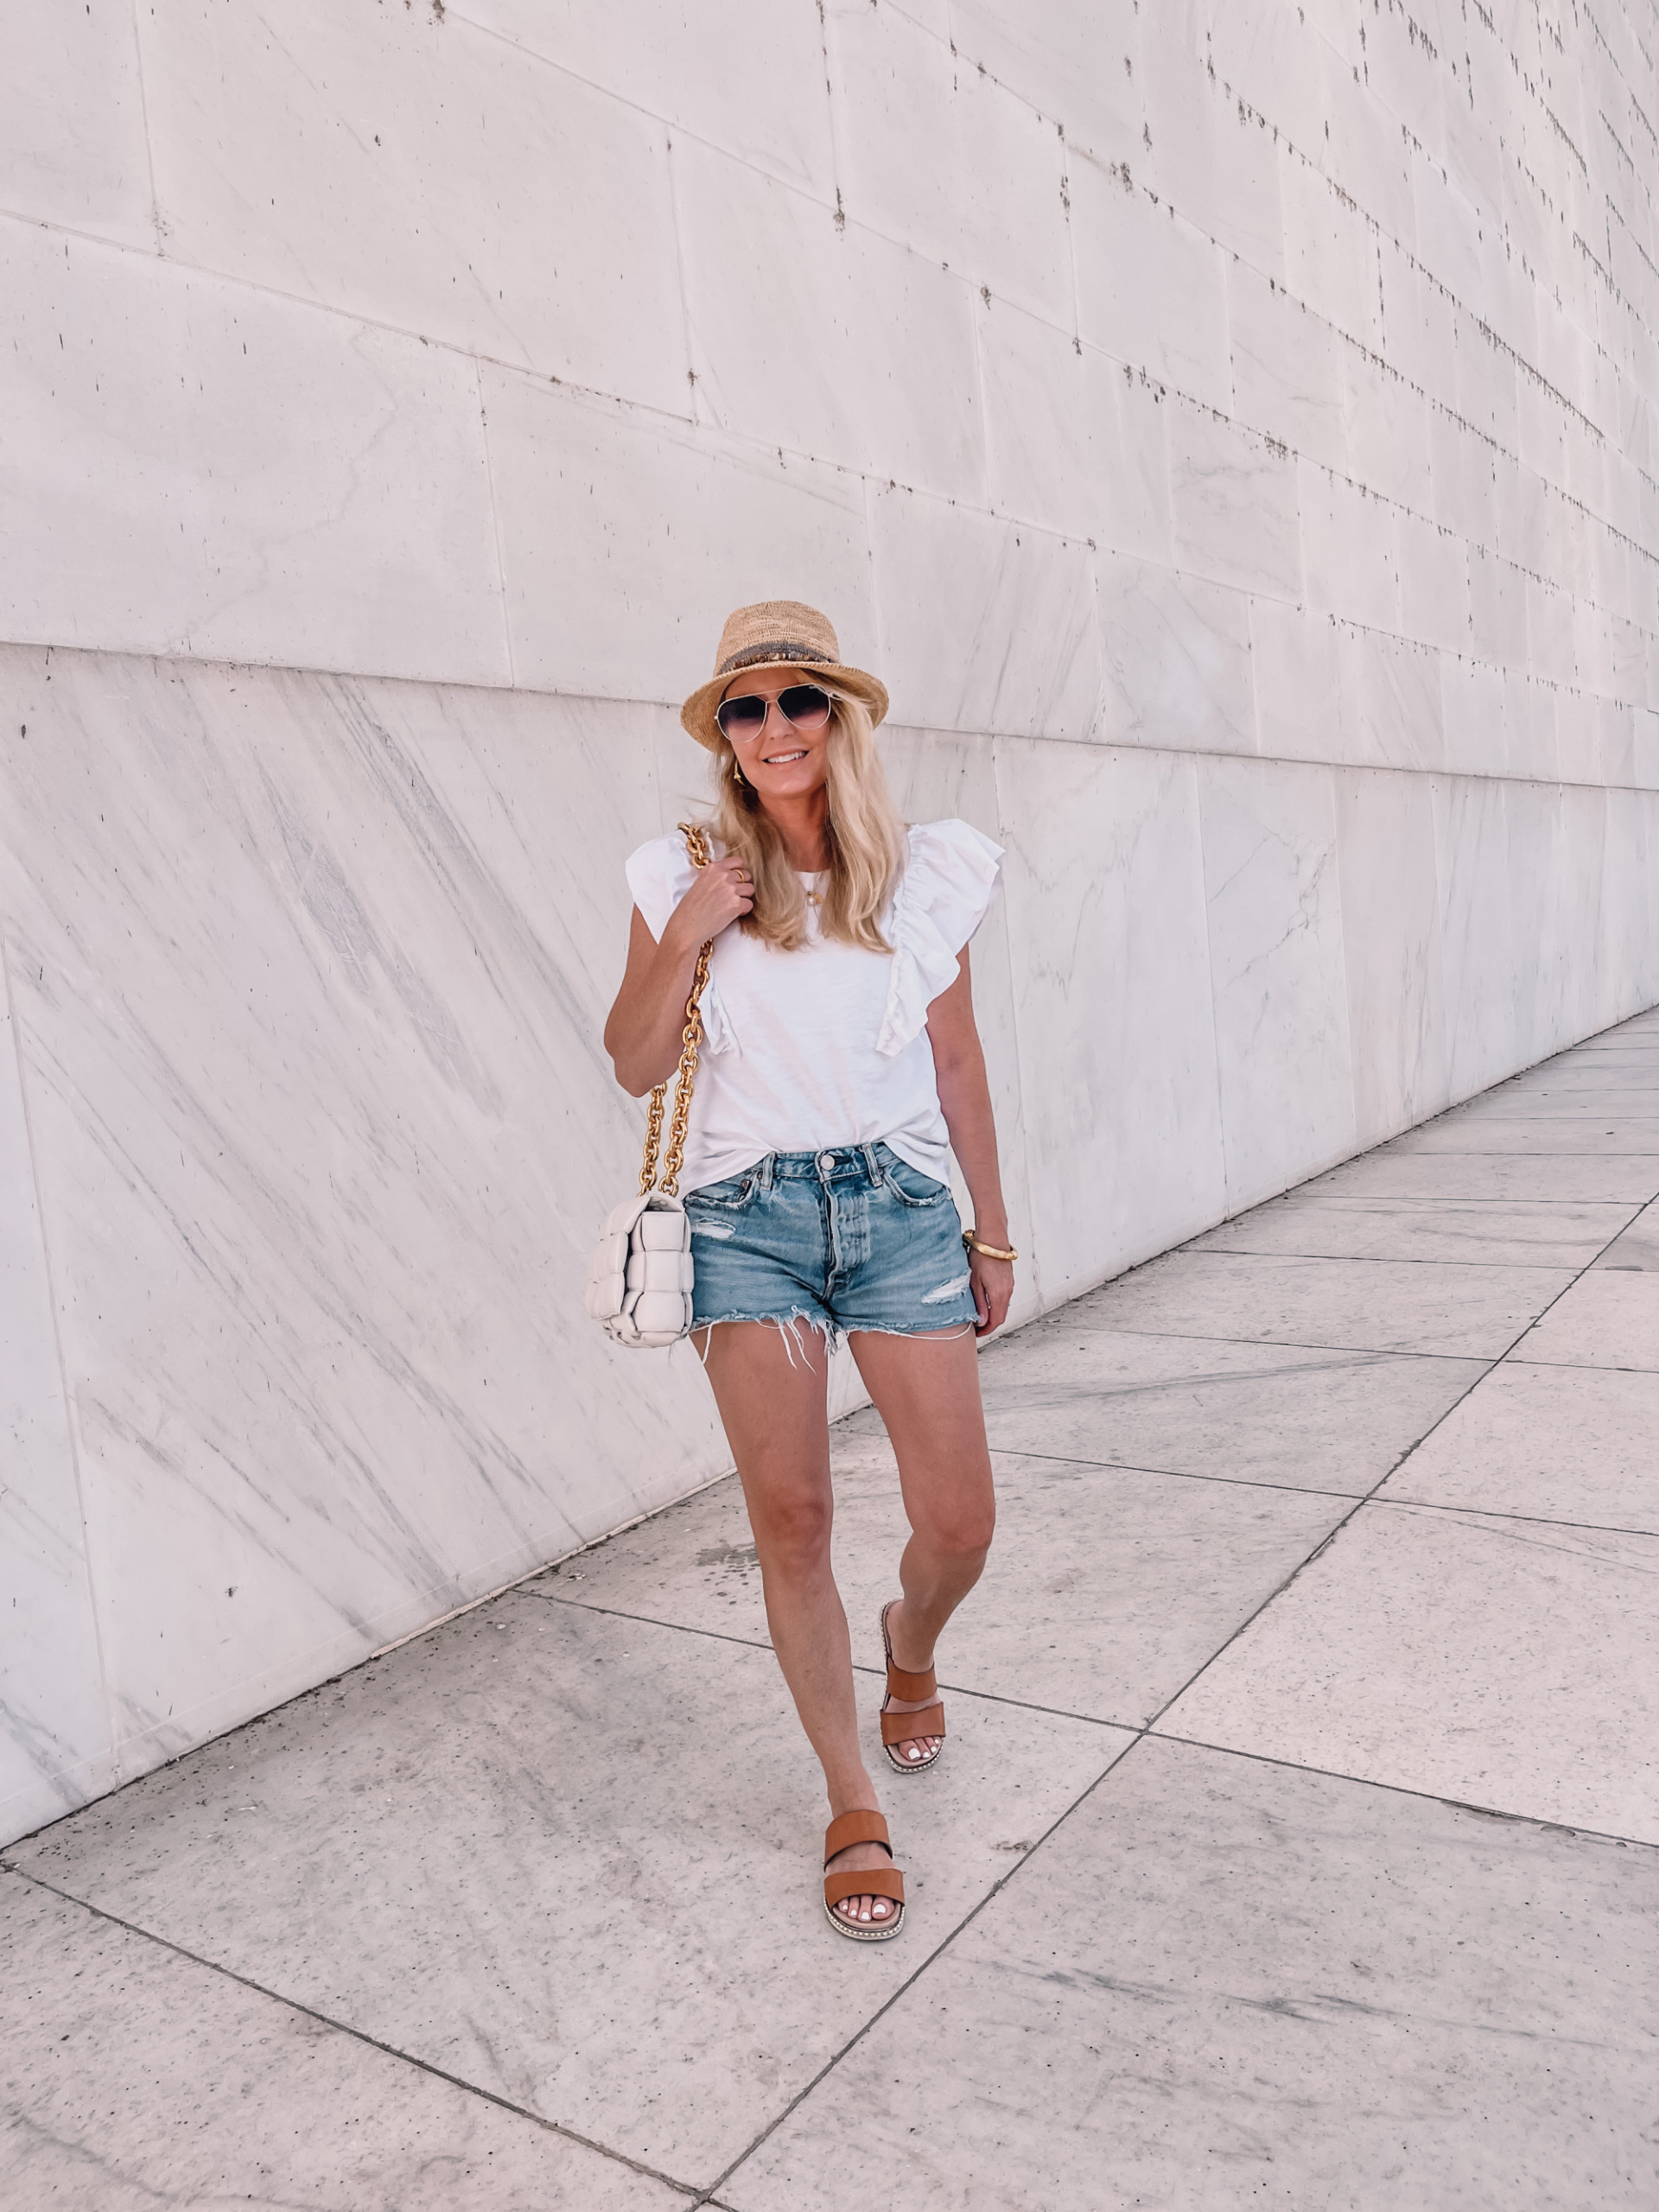 outfits for long road trip featuring Moussy jean shorts and white ruffle shoulder tee by Nation LTD on fashion over 40 blogger Erin Busbee in Washington, DC